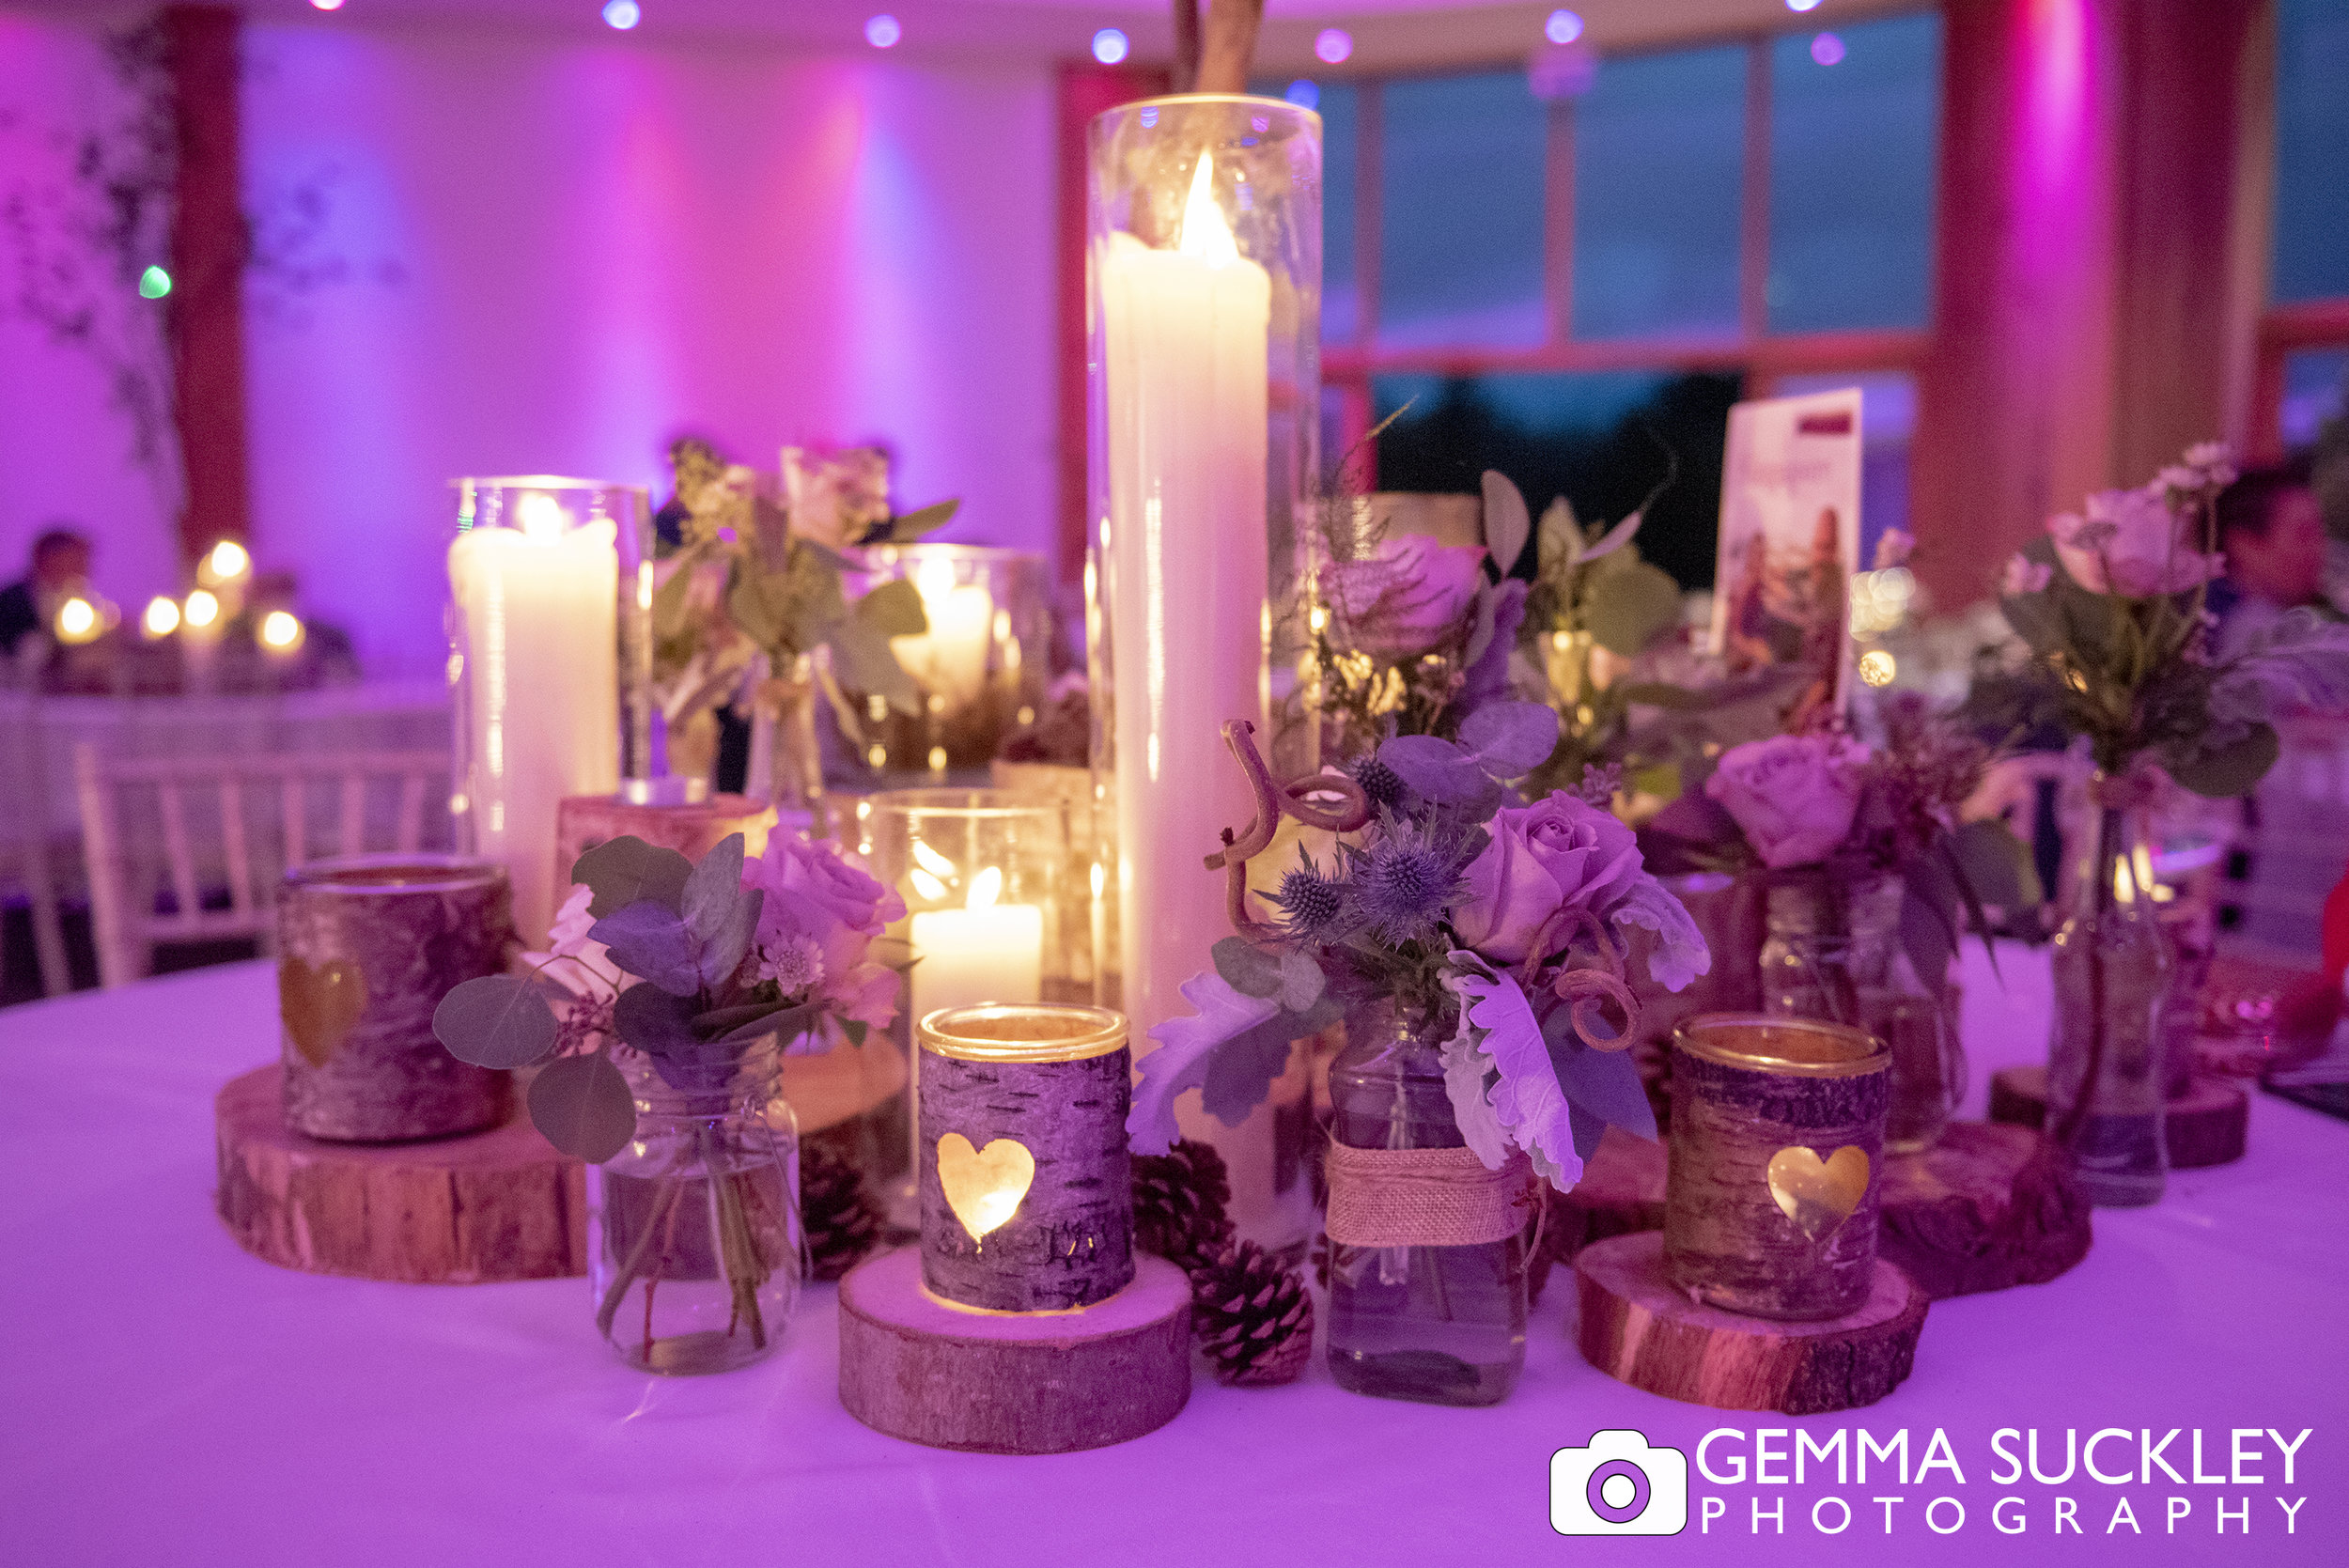 candles and flowers on the table at the outbarn wedding in clitheroe